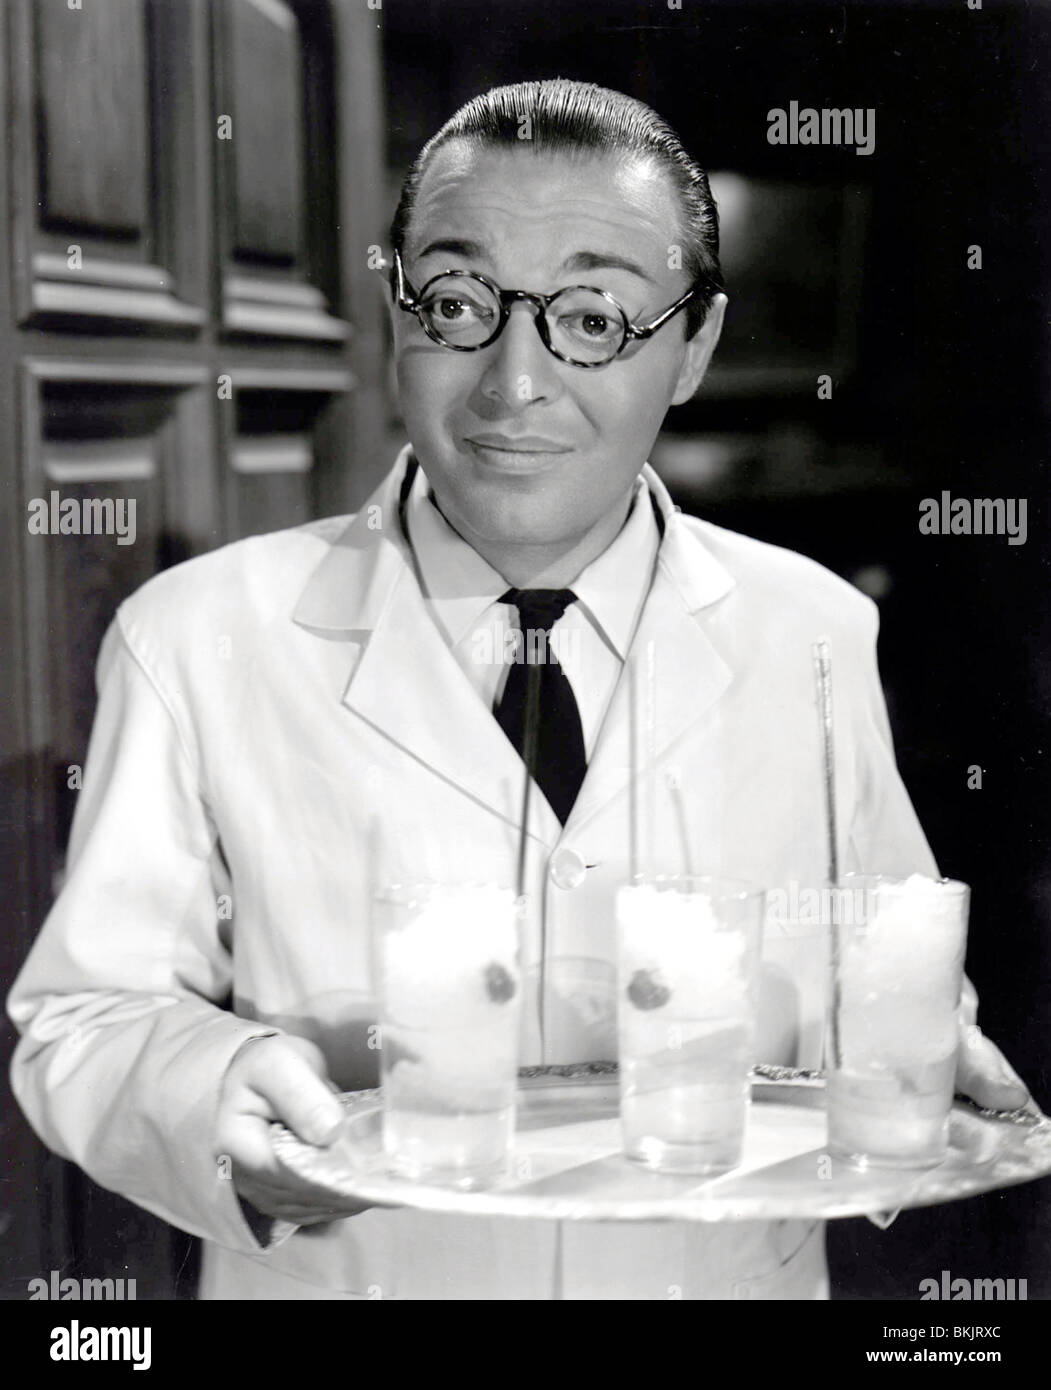 MYSTERIOUS MR MOTO (1938) PETER LORRE, NORMAN FOSTER (DIR) MMMO 001 P - Stock Image